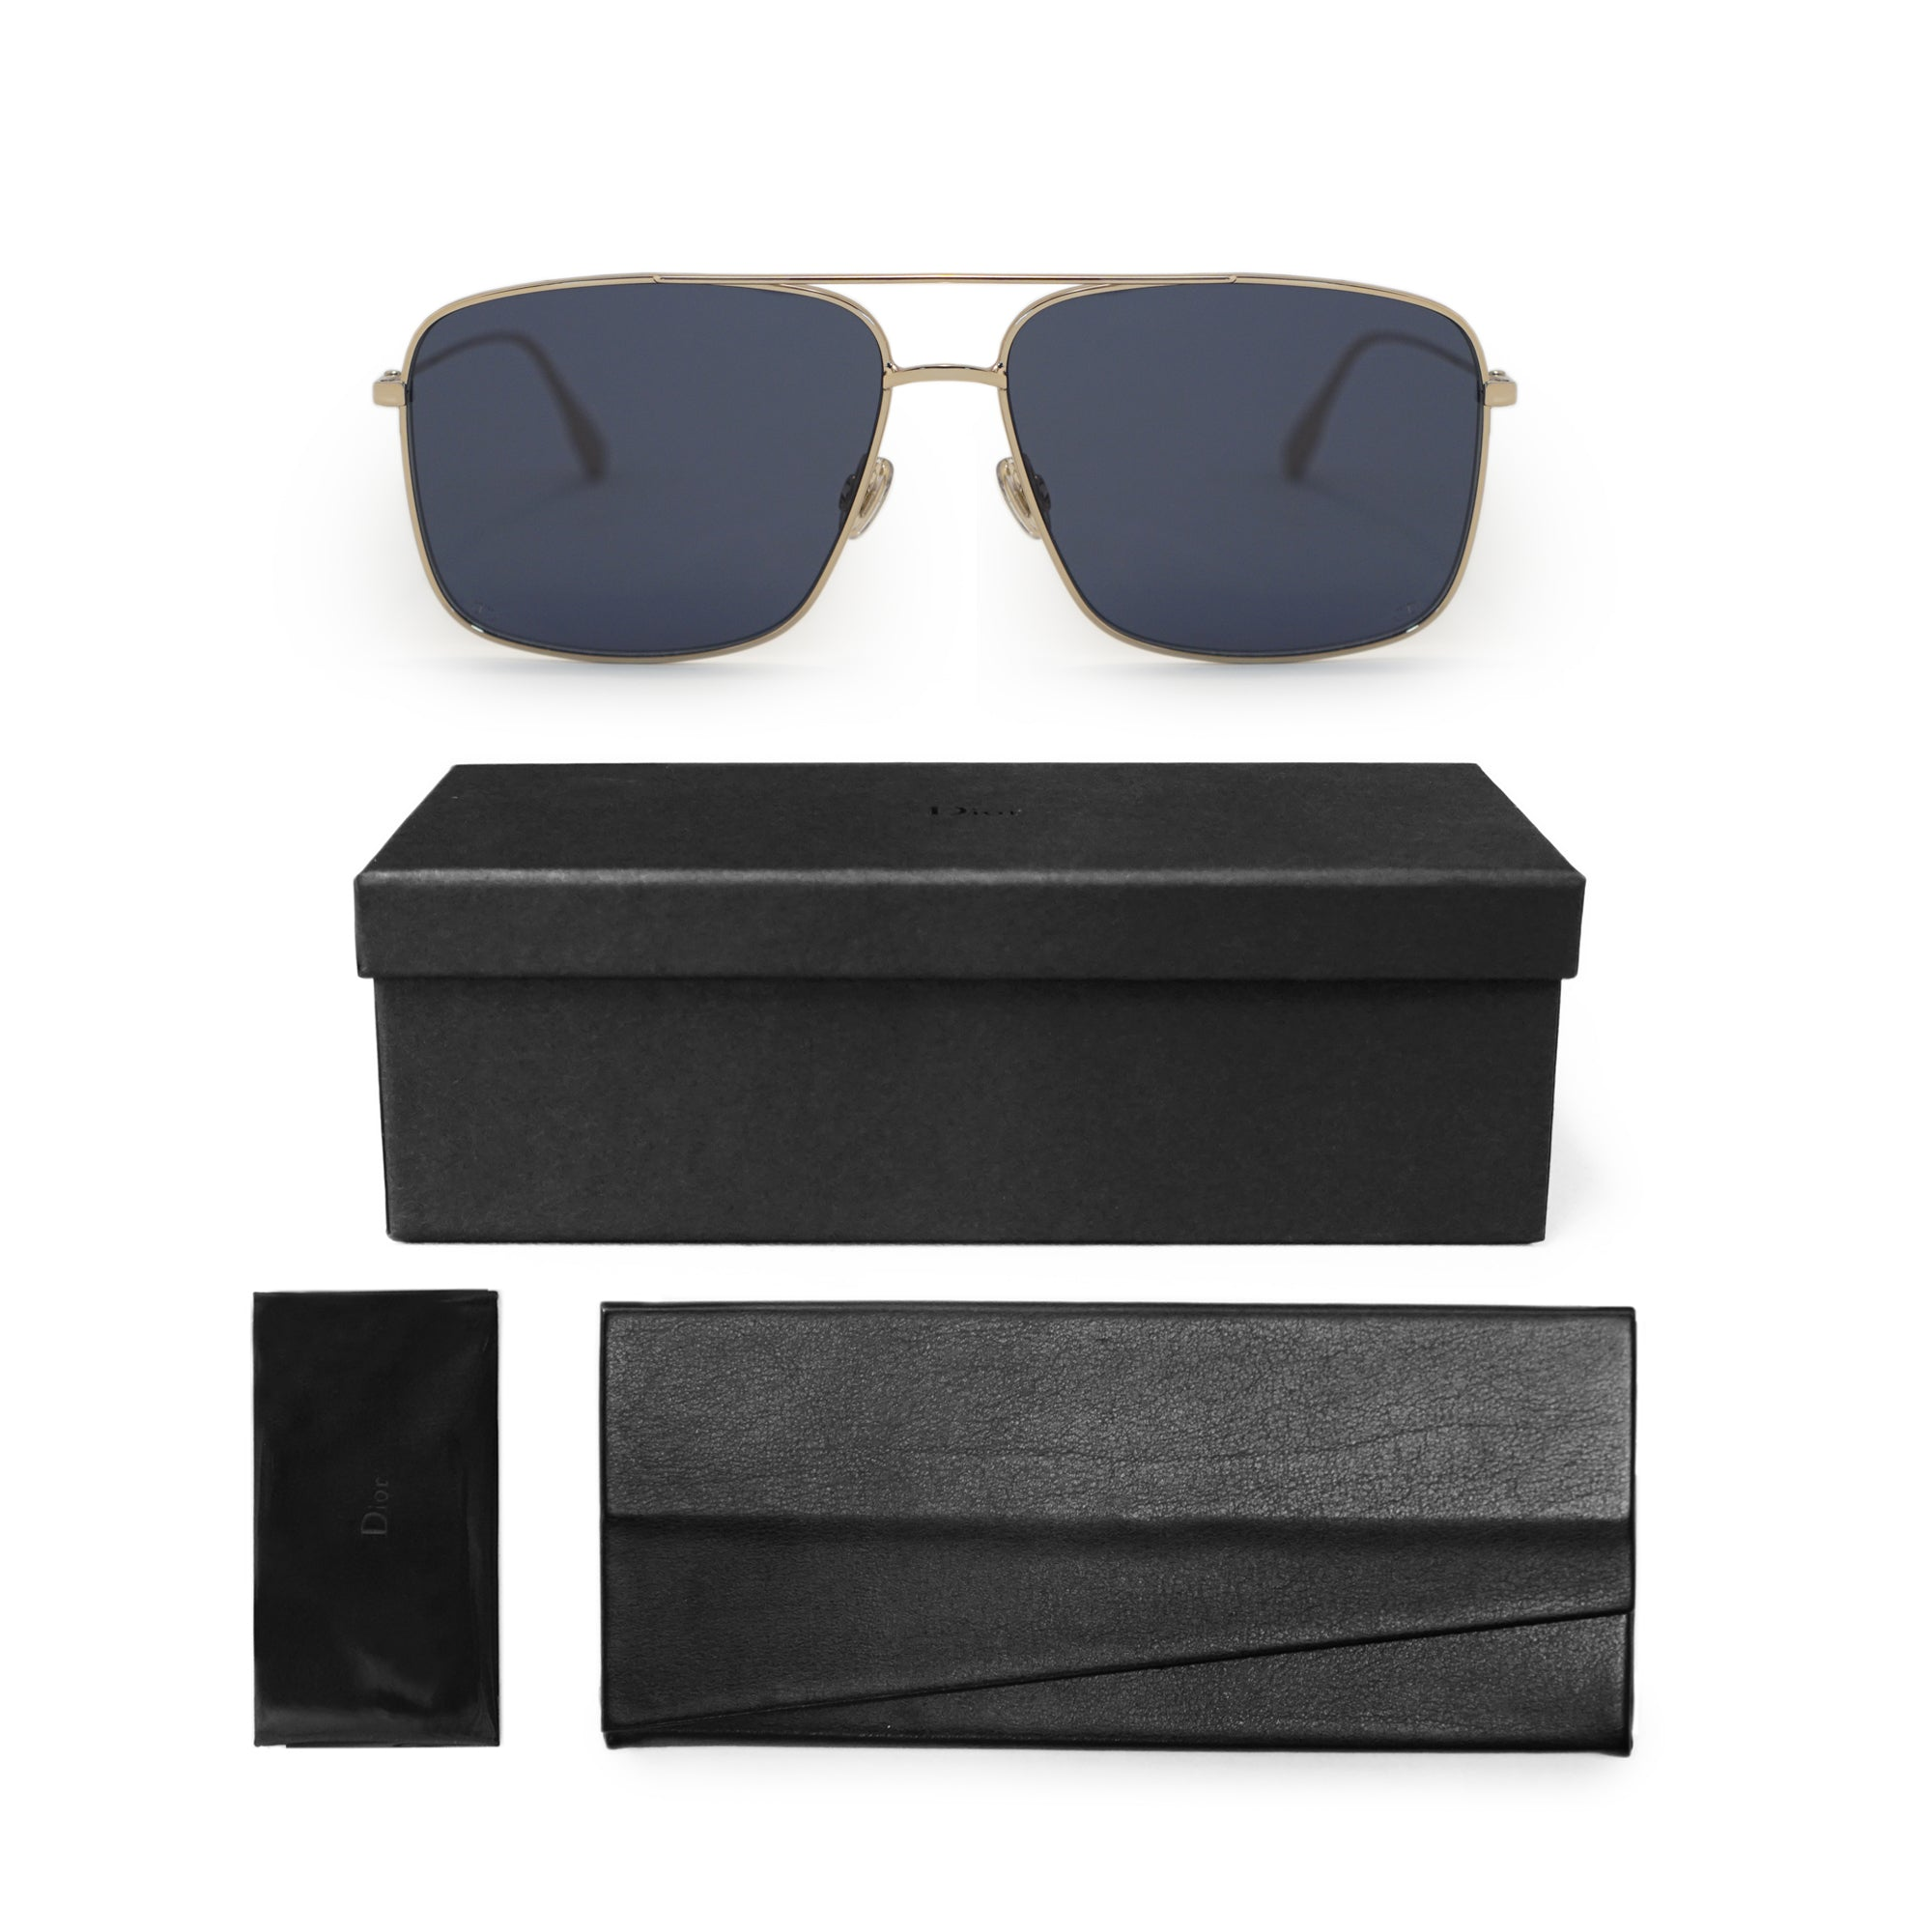 Christian Dior Square Sunglasses StellaireO 3S J5GKU 57